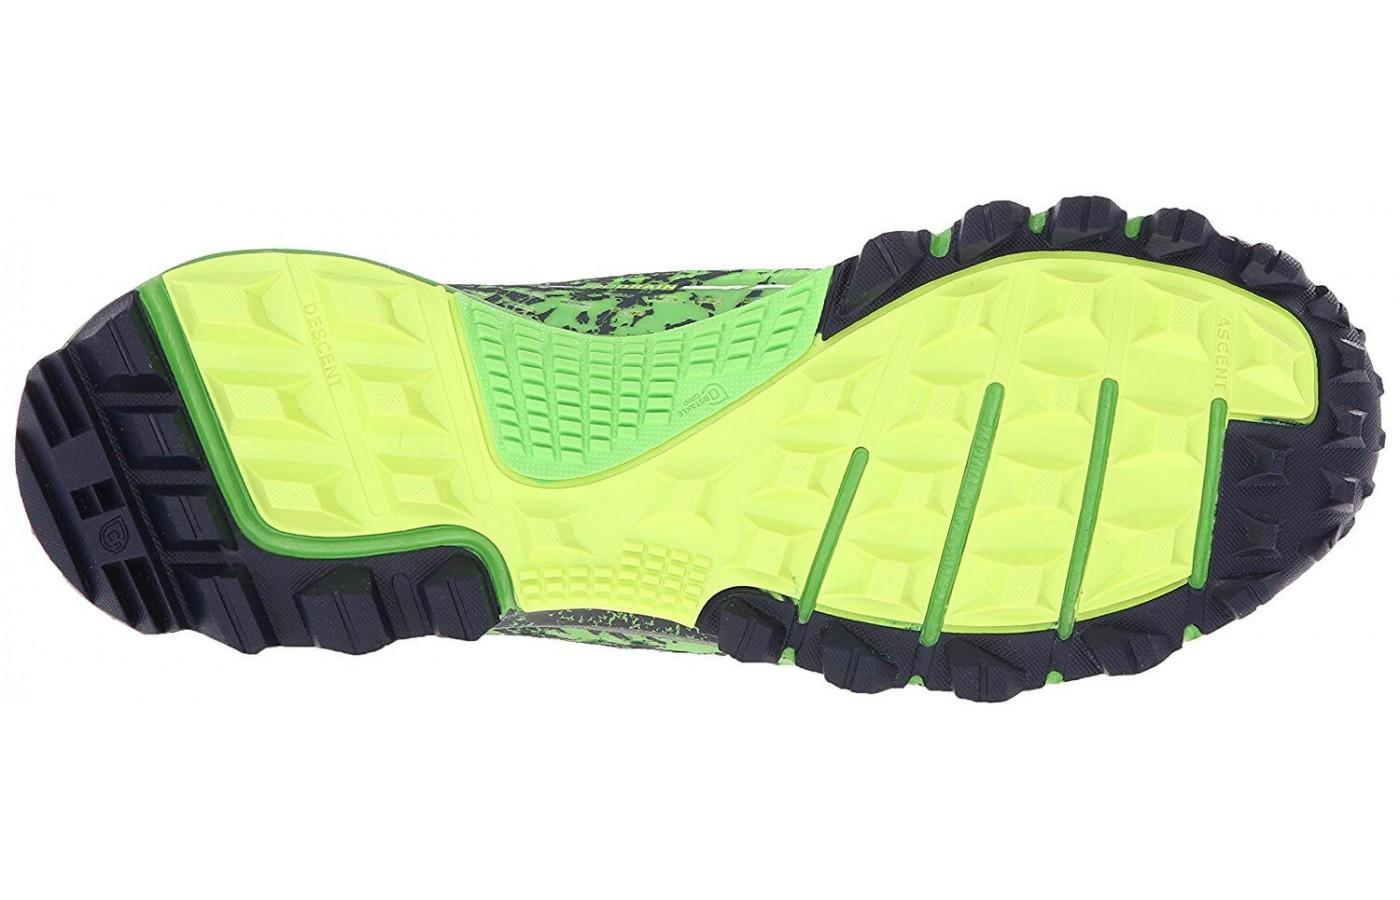 Reebok All Terrain Thrill has a thick and durable outsole